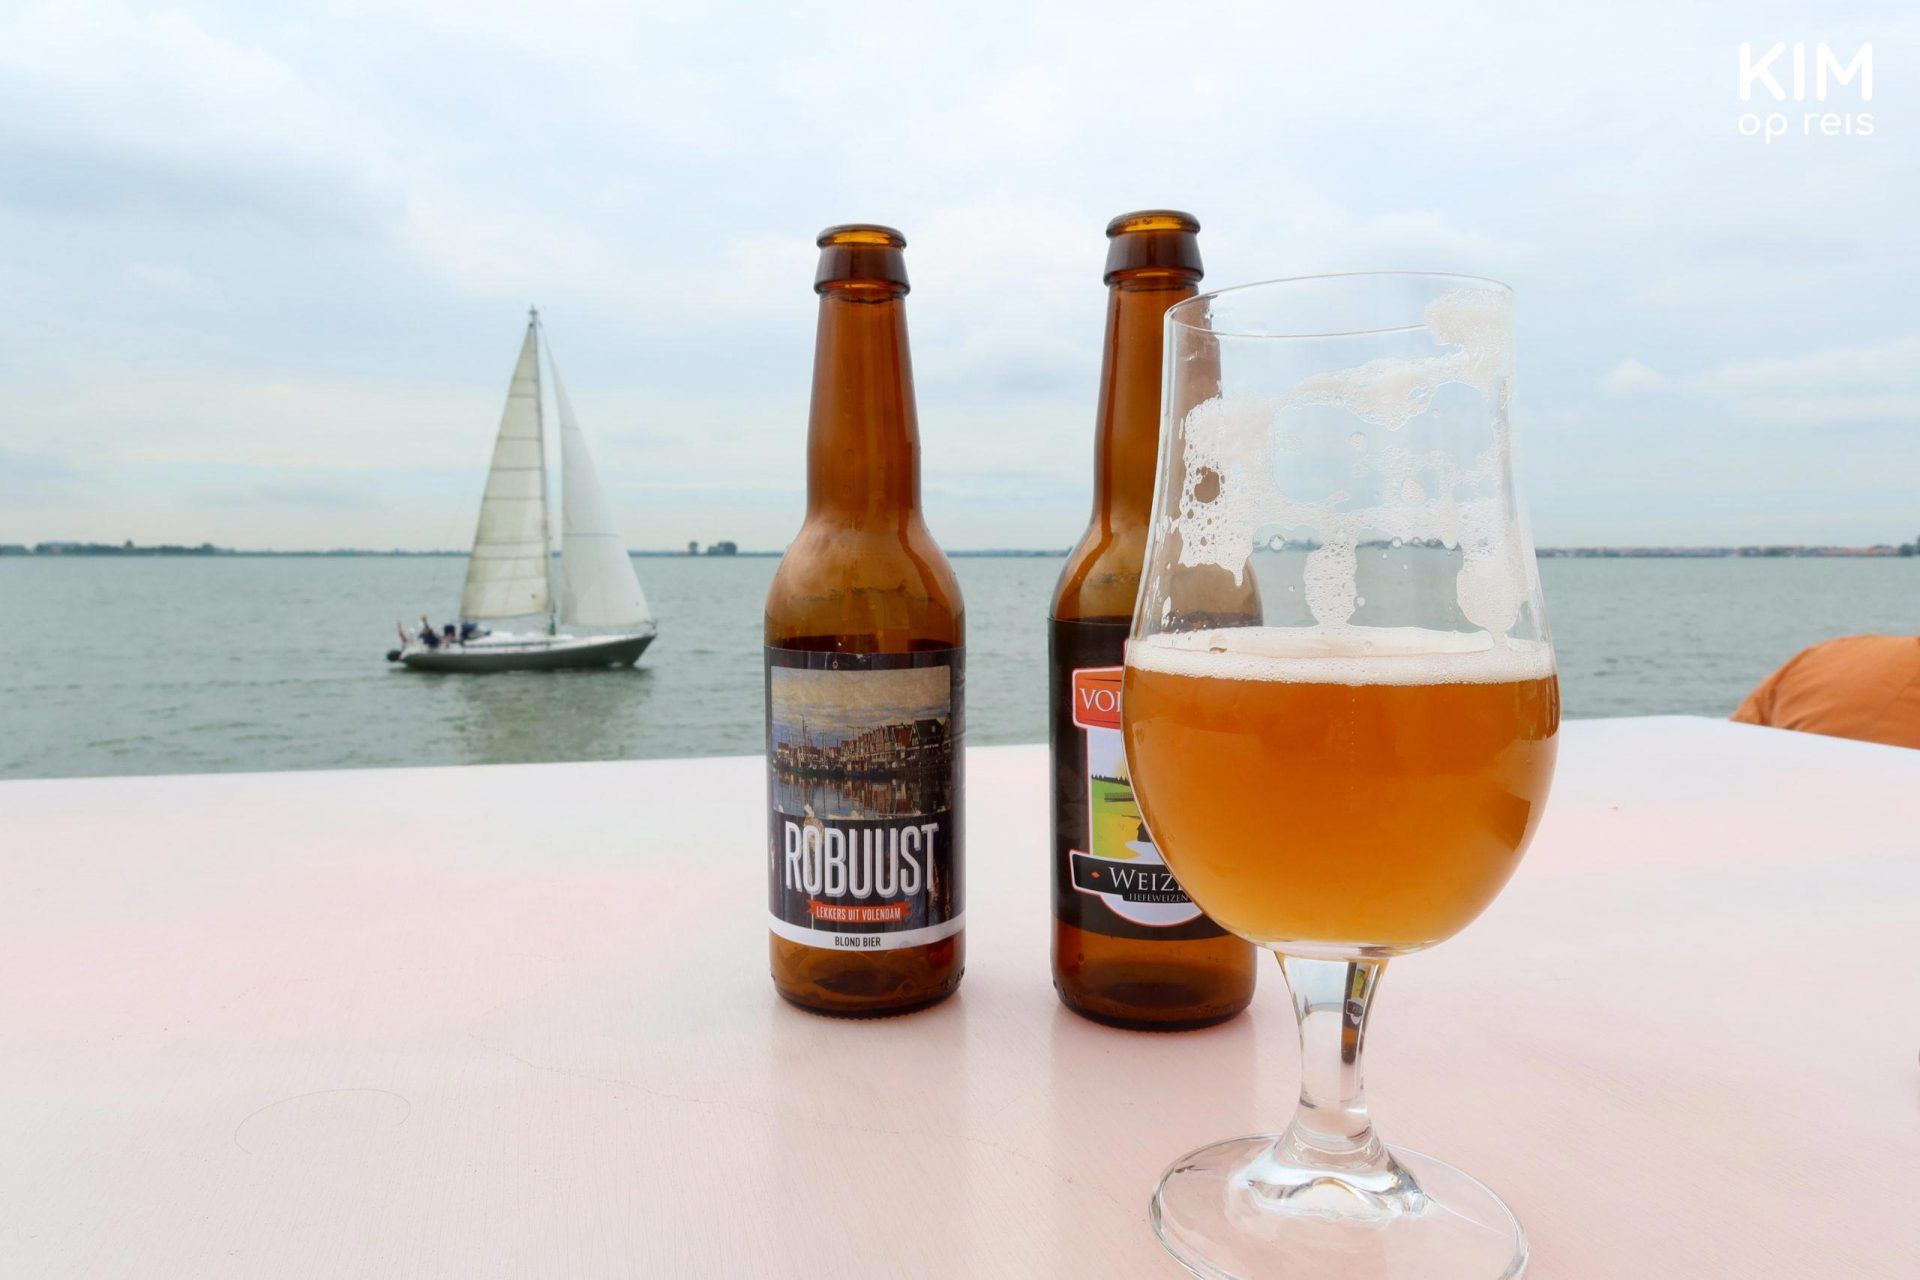 Volendam beer on the Marken Express - 2 bottles of beer and a glass of beer on an elevation with a sailing boat in the water in the background